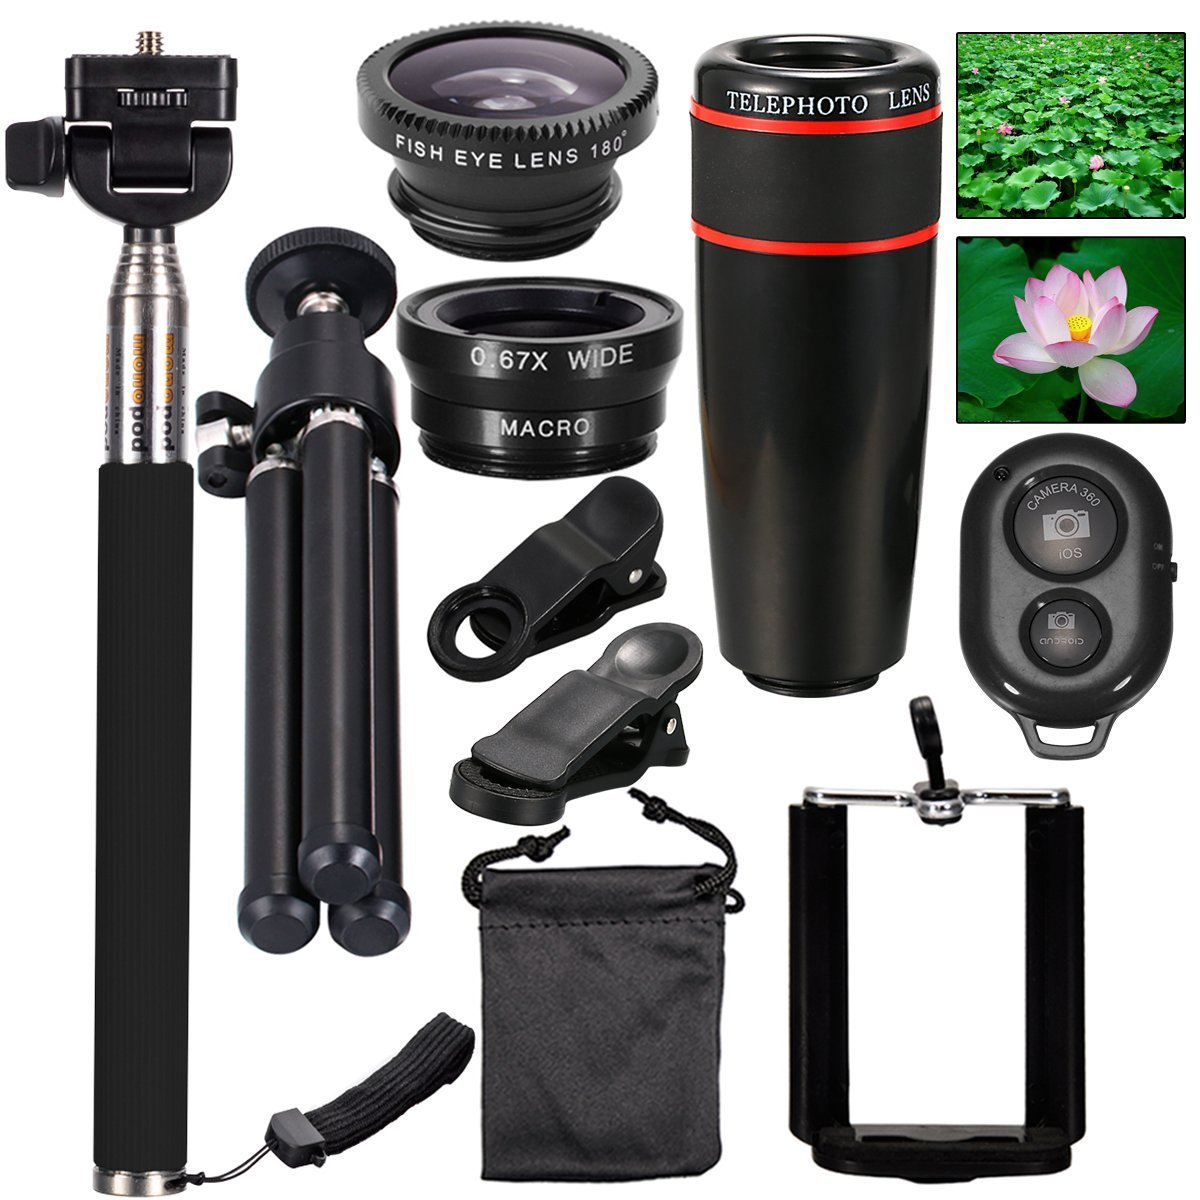 AFAITH Mobile Phones Lens 10-in-1 Lens Kit for Smartphone, 8x Telescope for telephoto / fisheye lens / 2 in 1 macro lens and remote control Selfie Stick Monopod + Bluetooth + Mini Tripod Monopod for iPhone 7 / iPhone 7 Plus, iPhone 6s / 6s Plus, Samsung Galaxy S8 / S8 / S7 / S7 / S6, Huawei P10 /